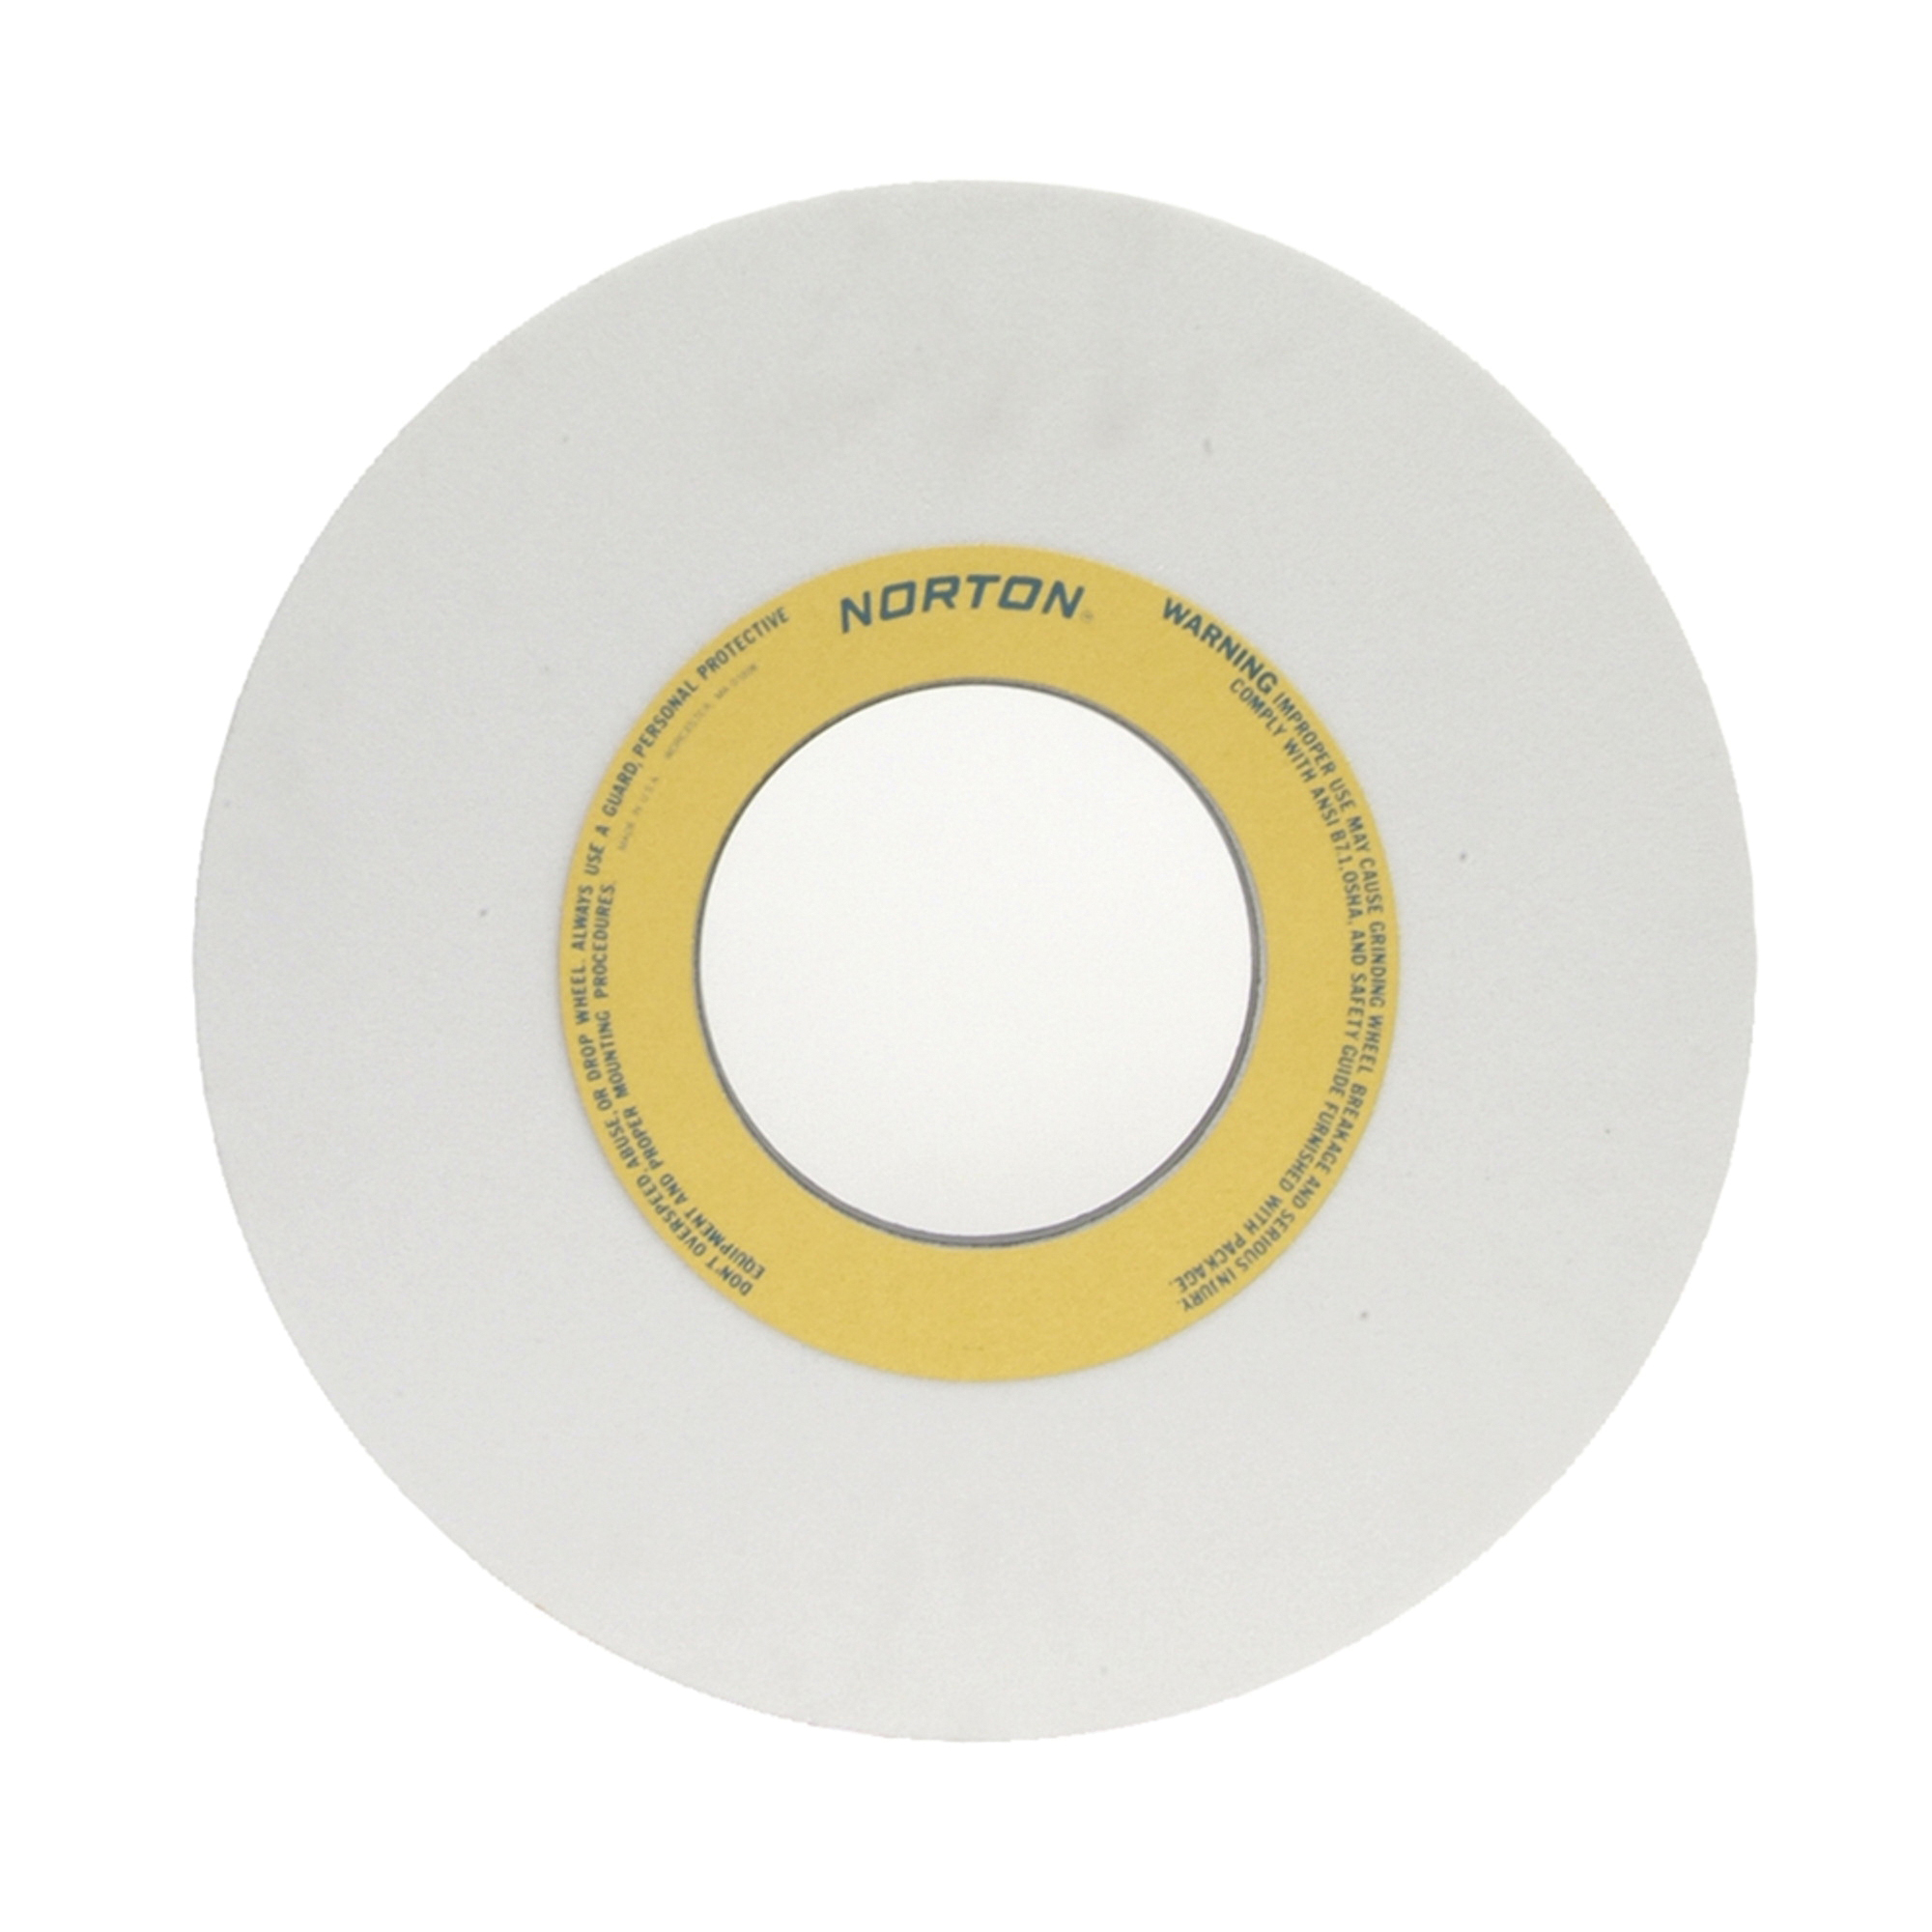 Norton® 66253364053 38A Straight Toolroom Wheel, 14 in Dia x 1 in THK, 5 in Center Hole, 60 Grit, Aluminum Oxide Abrasive